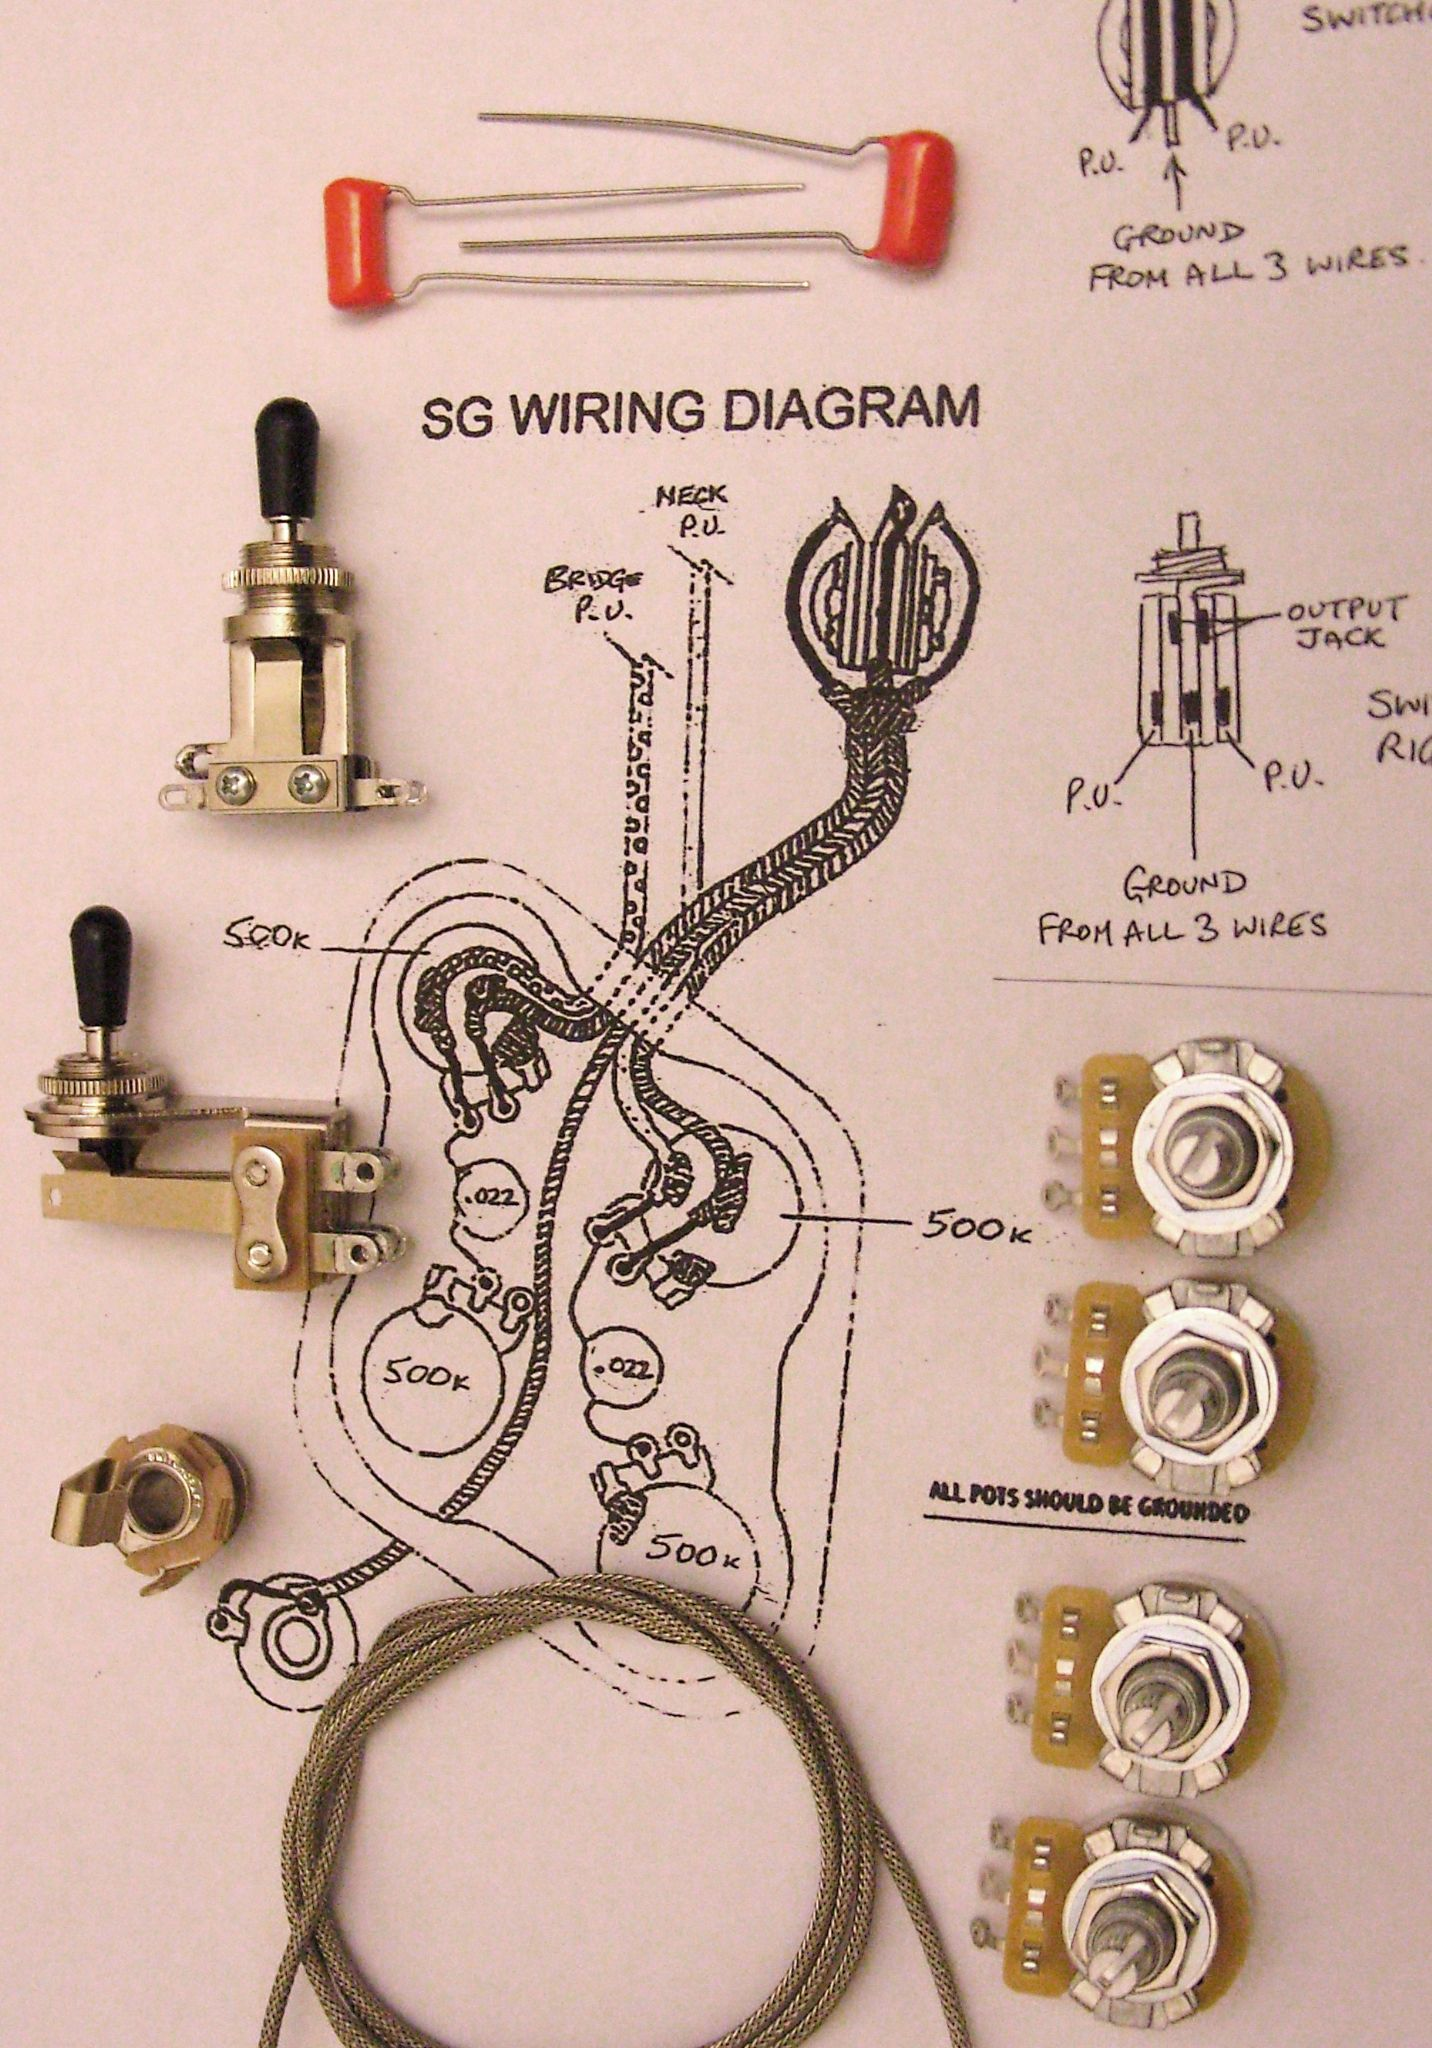 Sg Wiring Diagram Toggle Example Electrical Sl 3000 Ul Kit For With Short Switchcraft Switch 1986 Yamaha Sun Classic